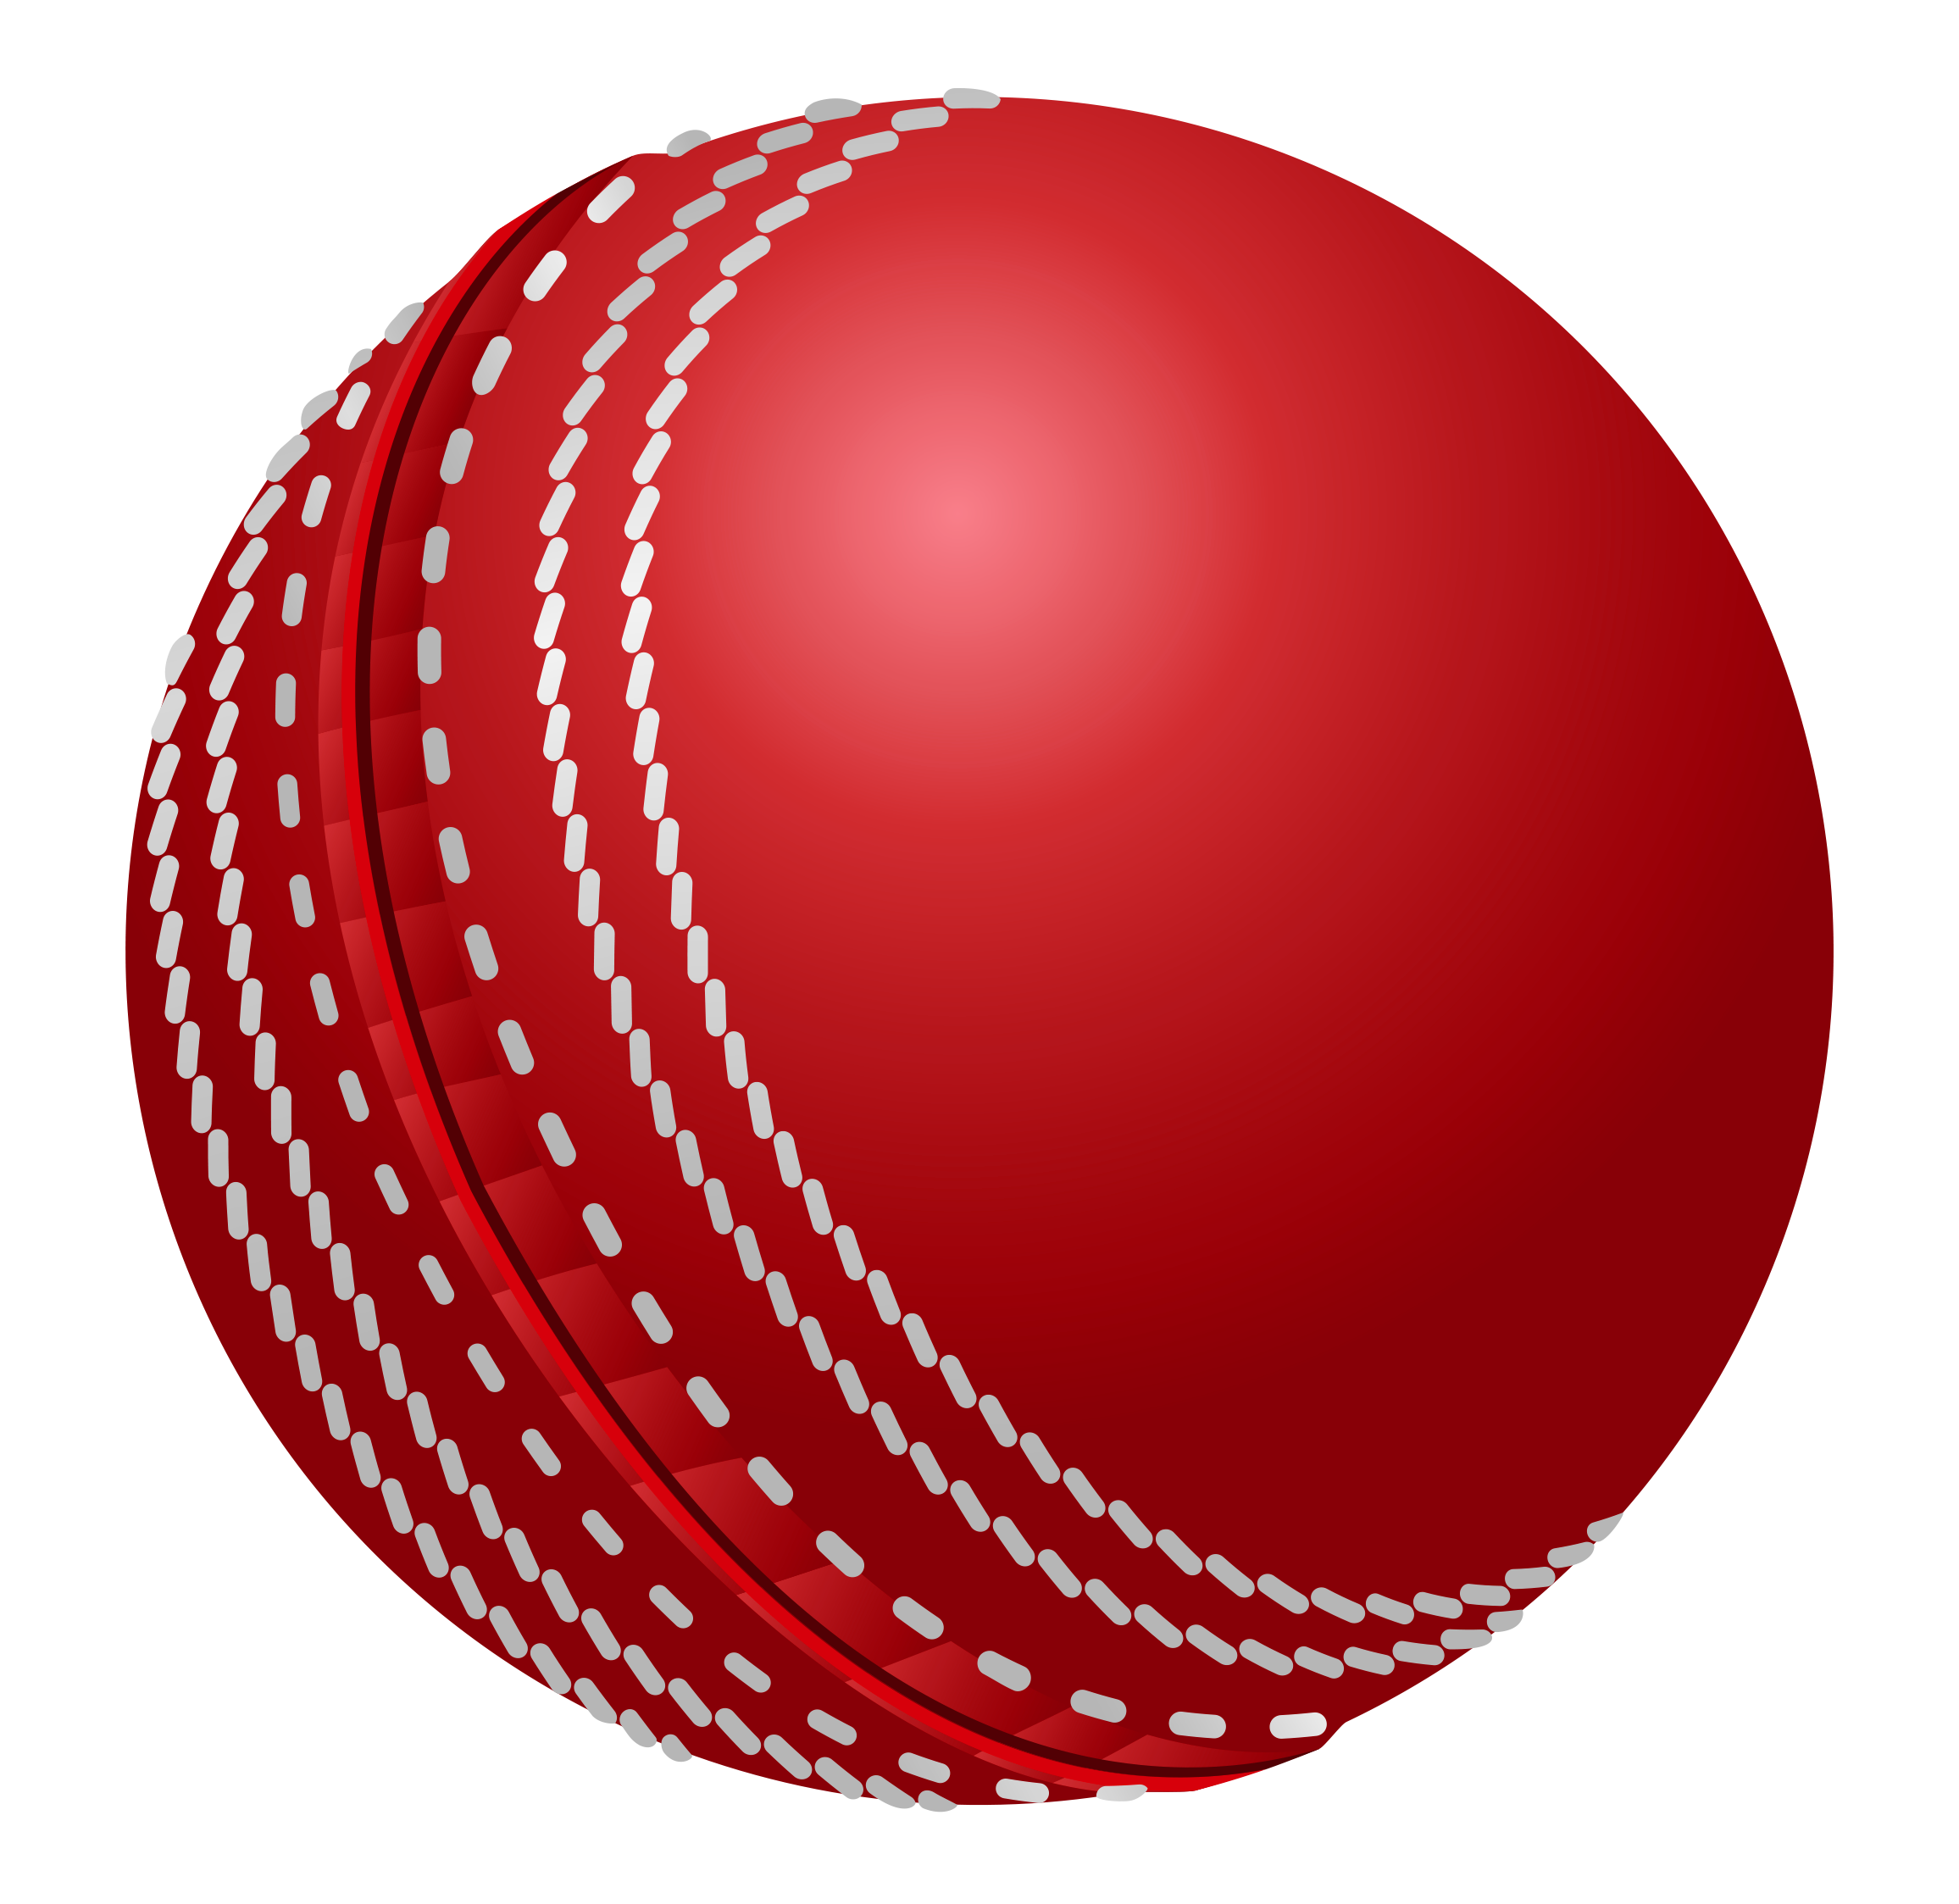 Ball png picture gallery. Clipart beach cricket